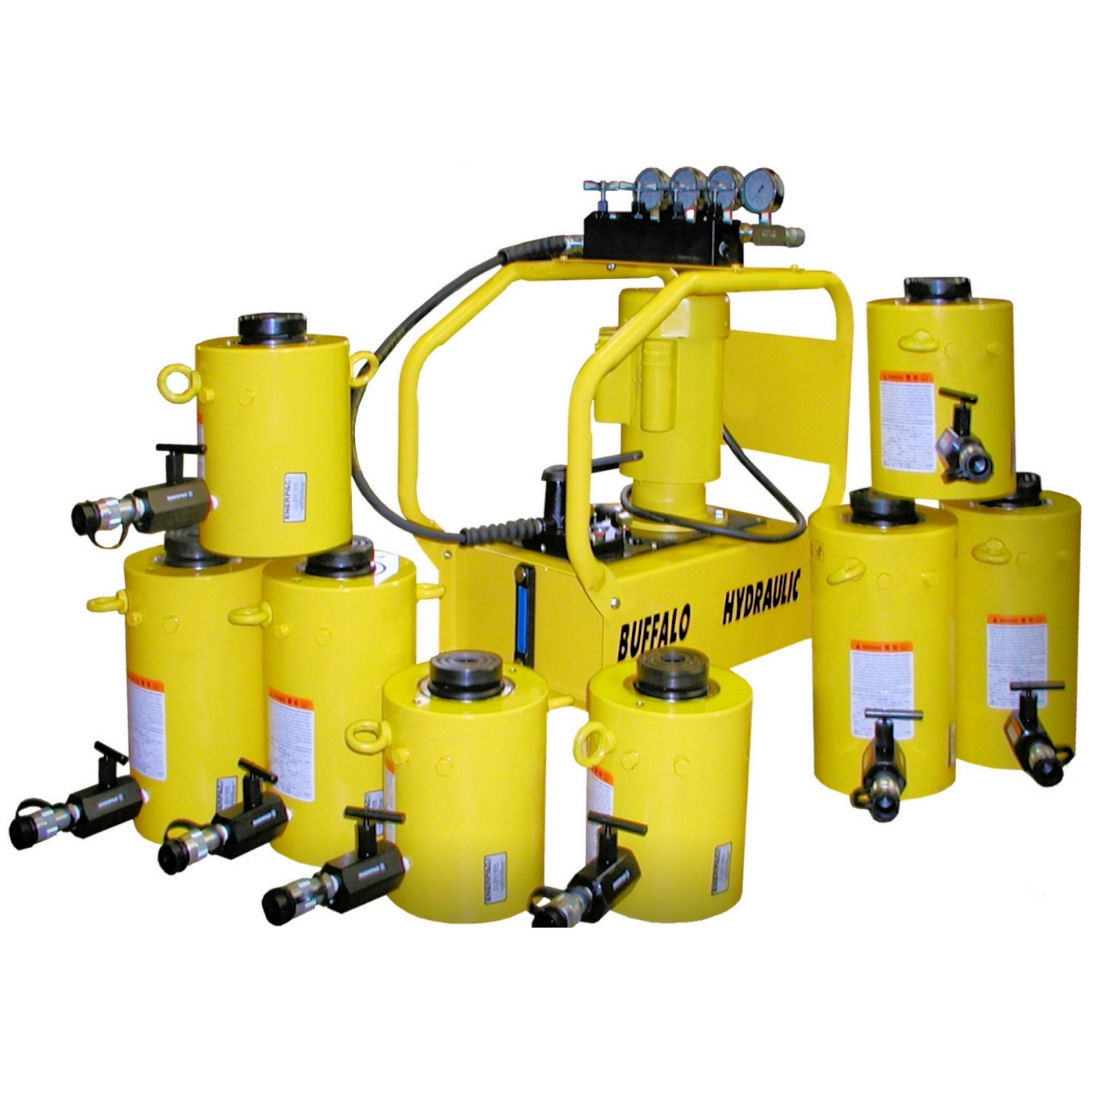 Enerpac Electric Hydraulic Bridge Jacking System Buffalo Hydraulics And Electricity 8 Point High Tonnage